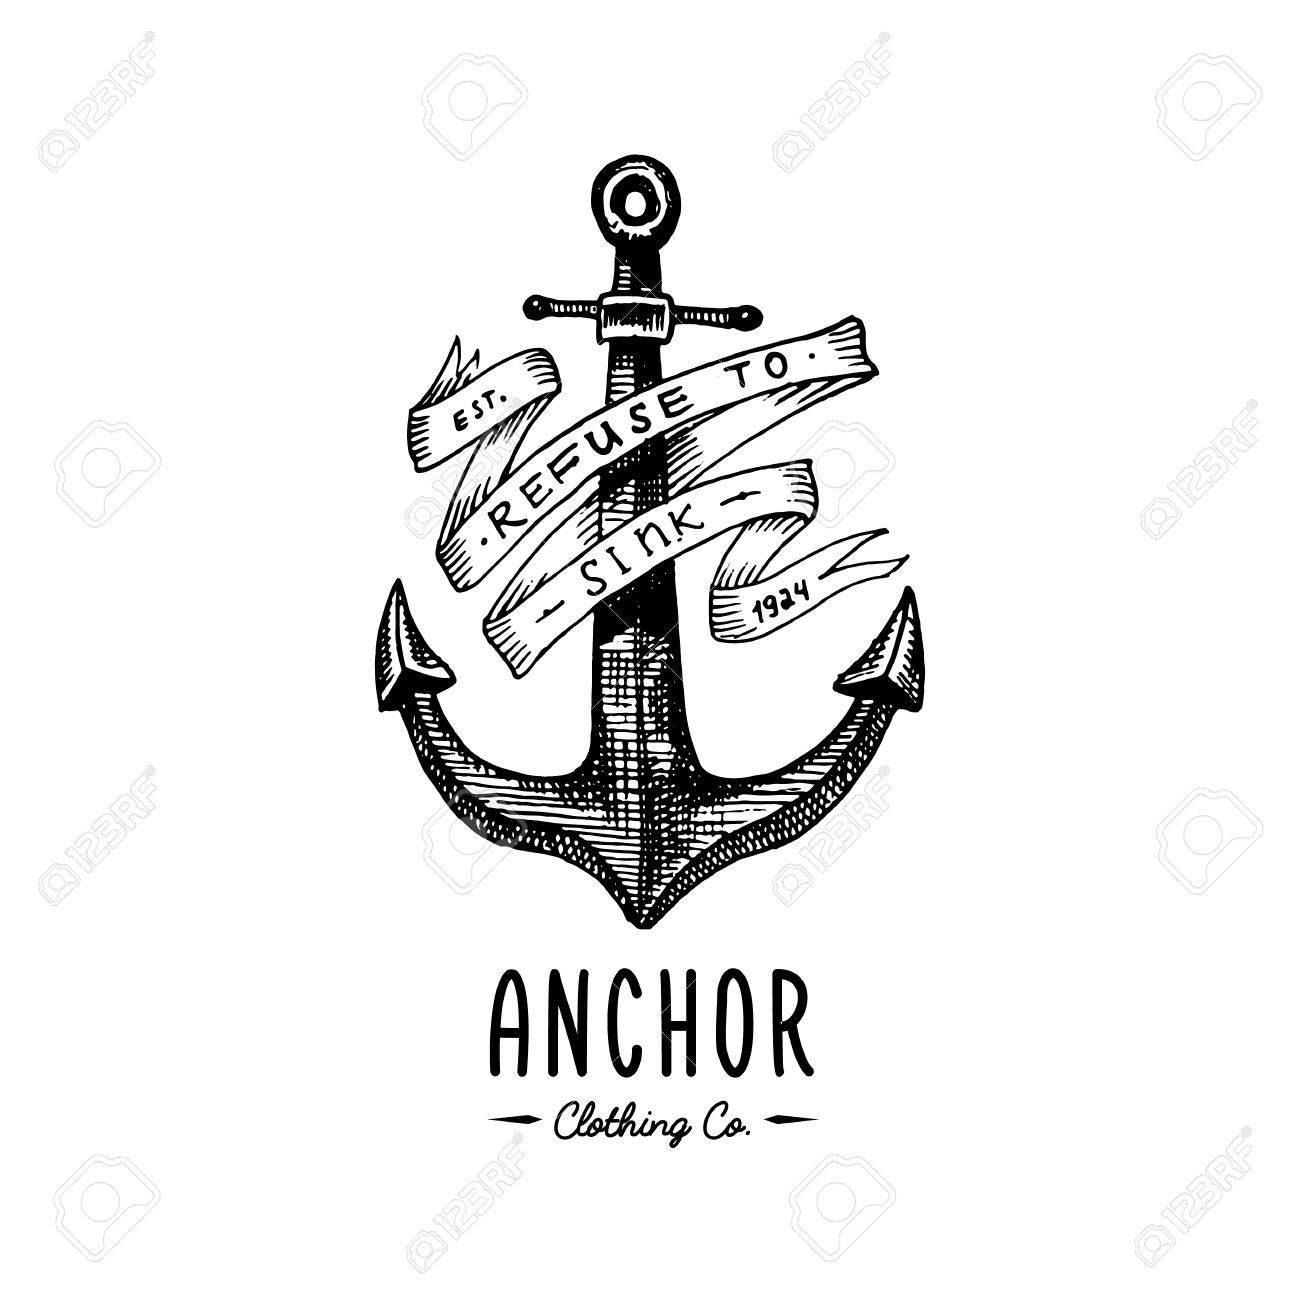 b43490a62 Anchor engraved vintage in old hand drawn or tattoo style, drawing for  marine, aquatic